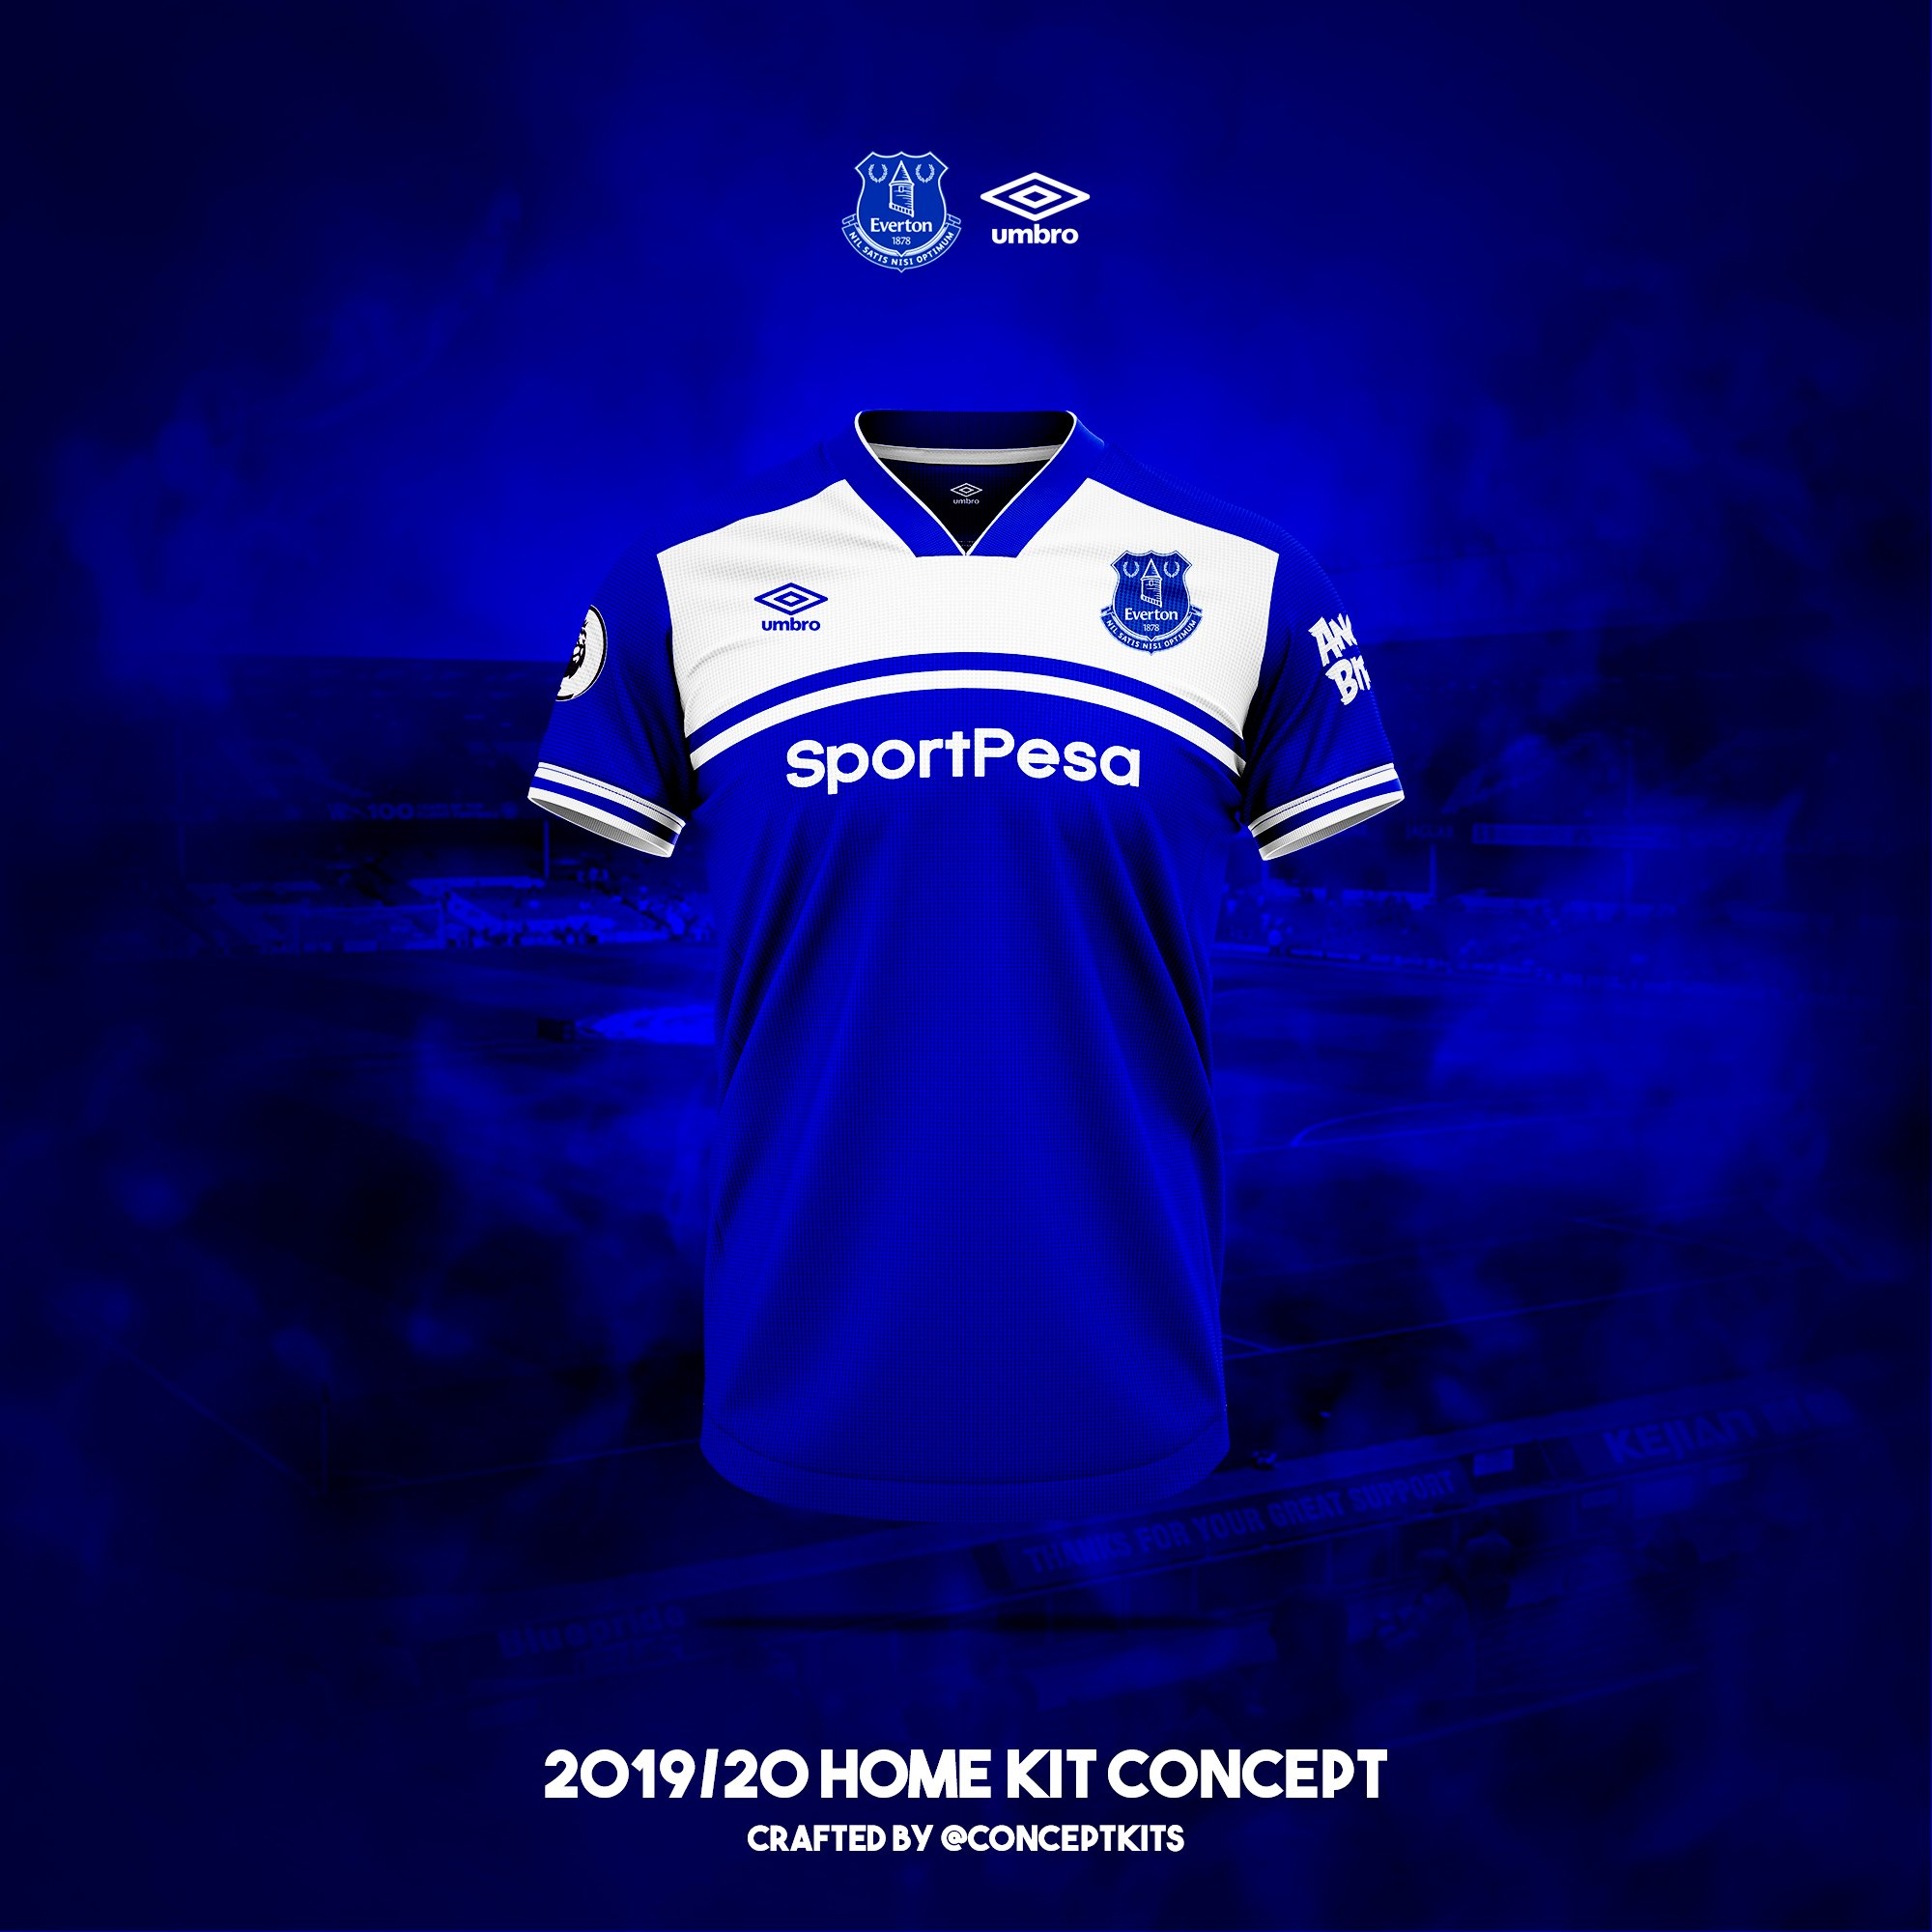 ce7c01816bc Everton s 2019 20 concept kits are like placing a bet on what the team will  wear next season. It s kind of exciting